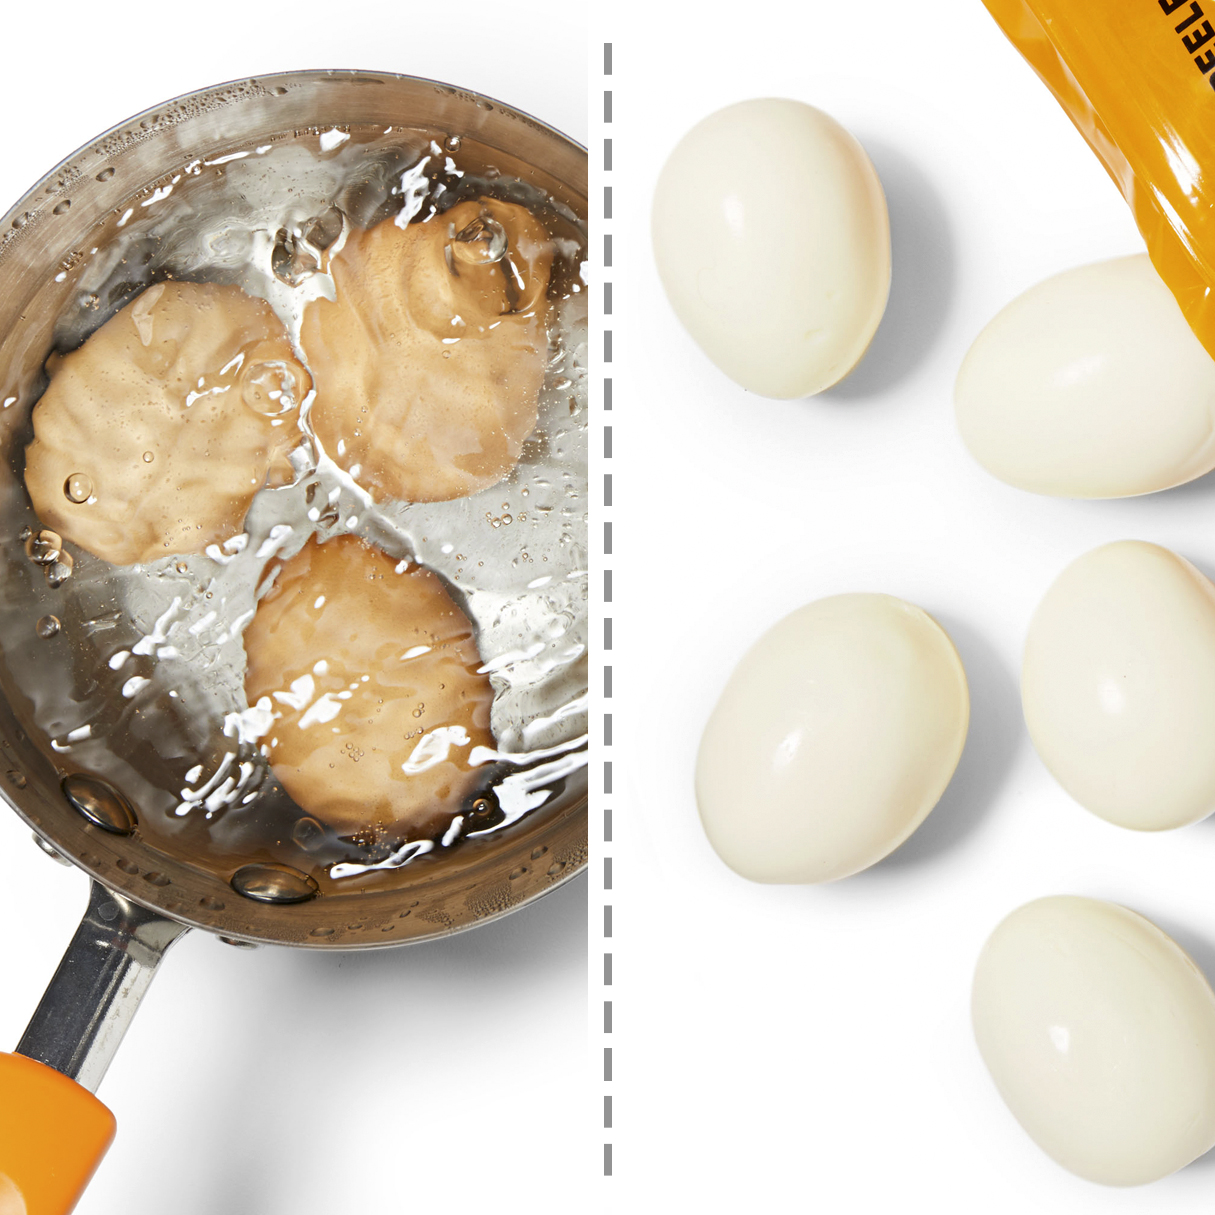 home-cooked and store-bought hardboiled eggs